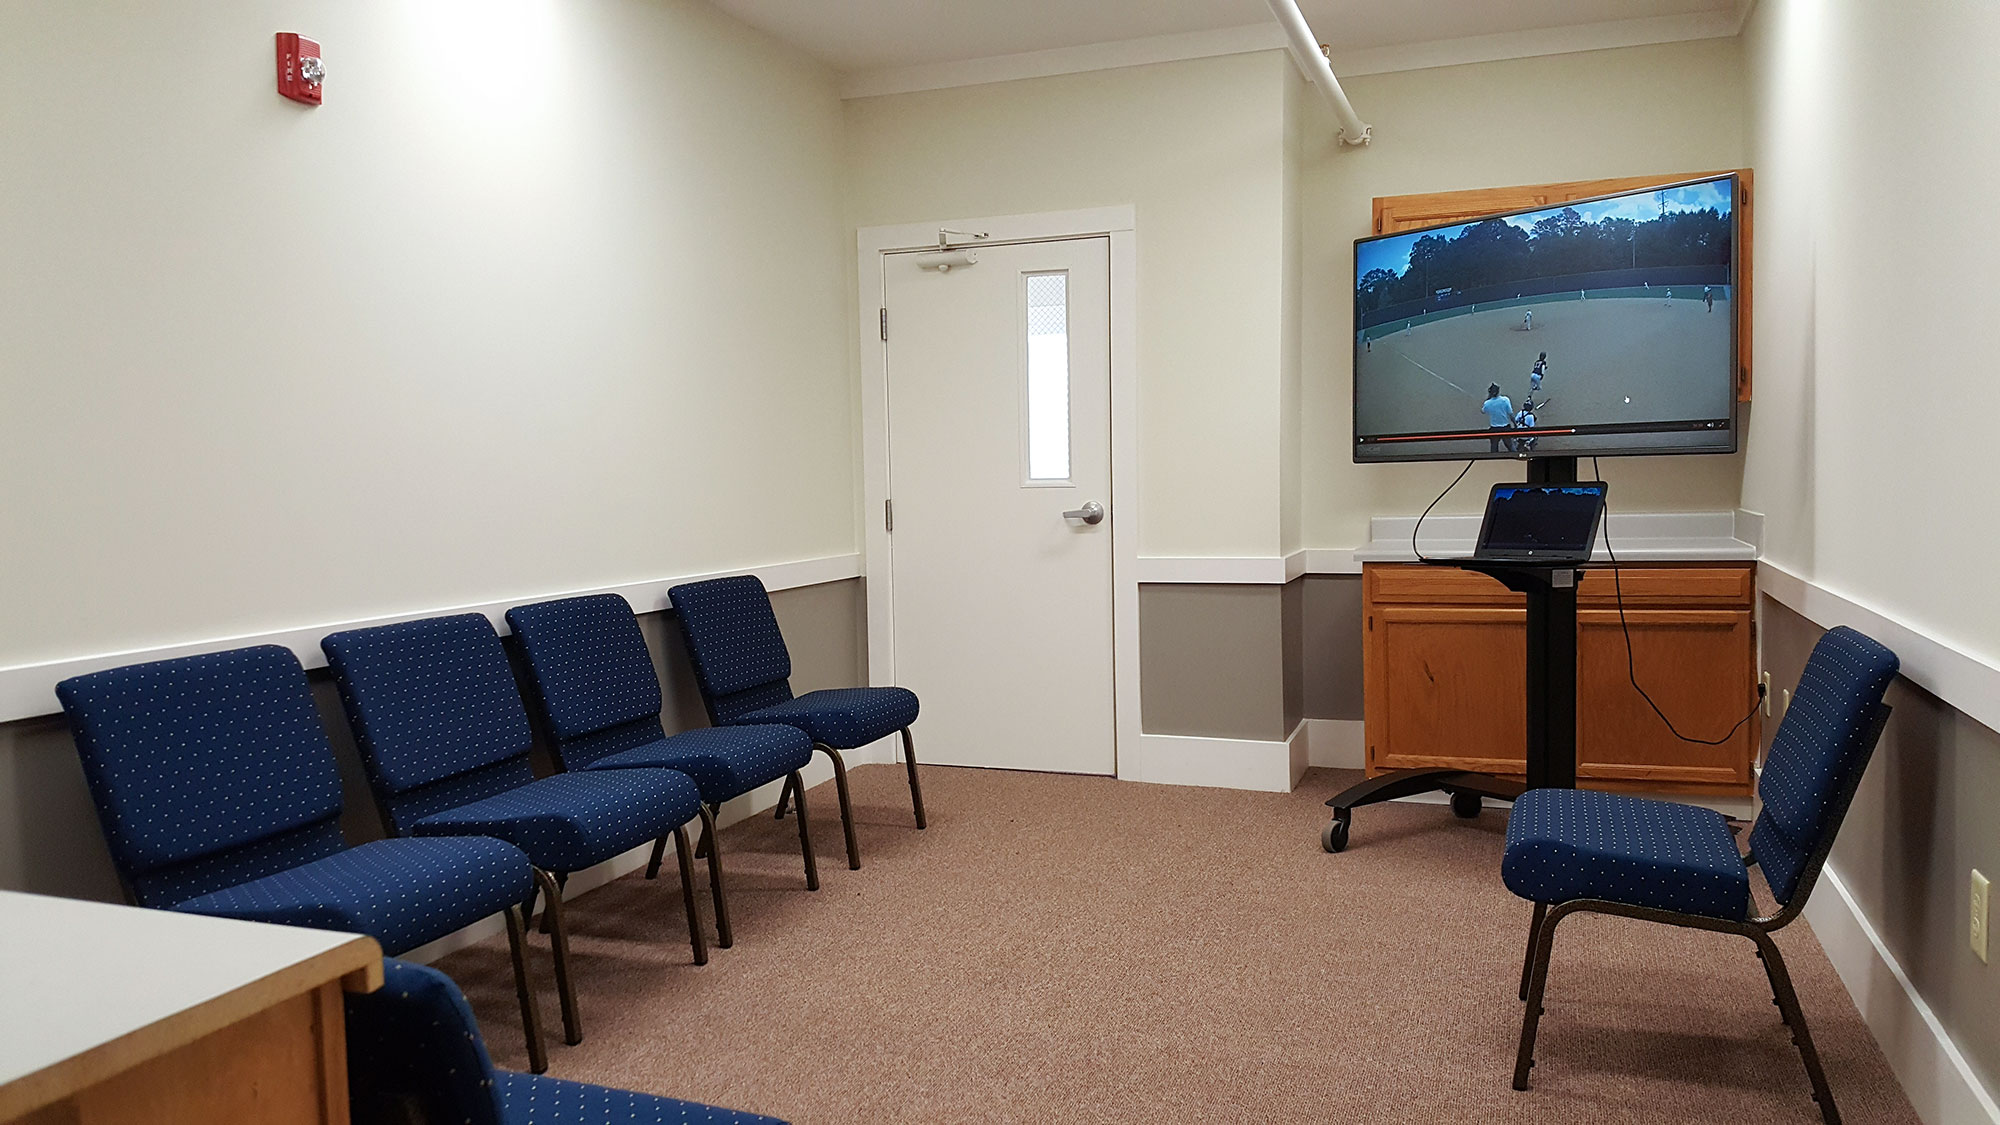 Photo of breakout room in the Conference building.